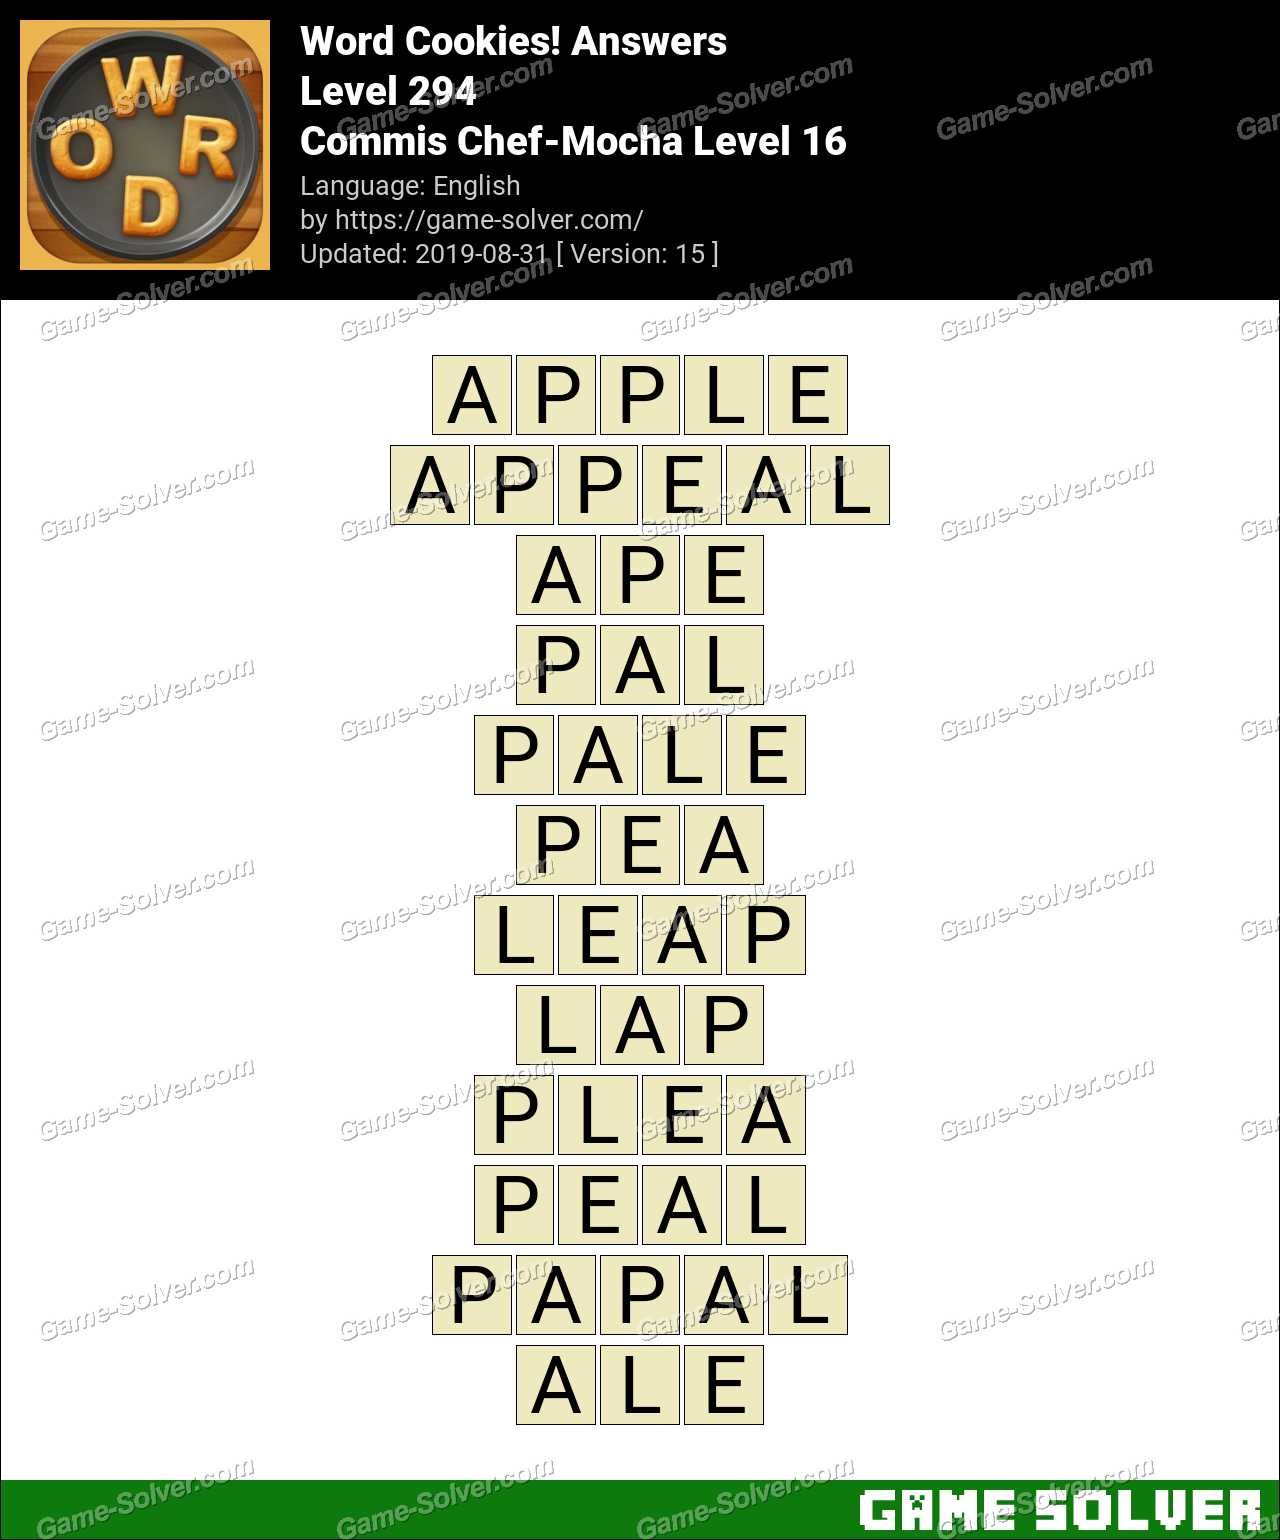 Word Cookies Commis Chef-Mocha Level 16 Answers